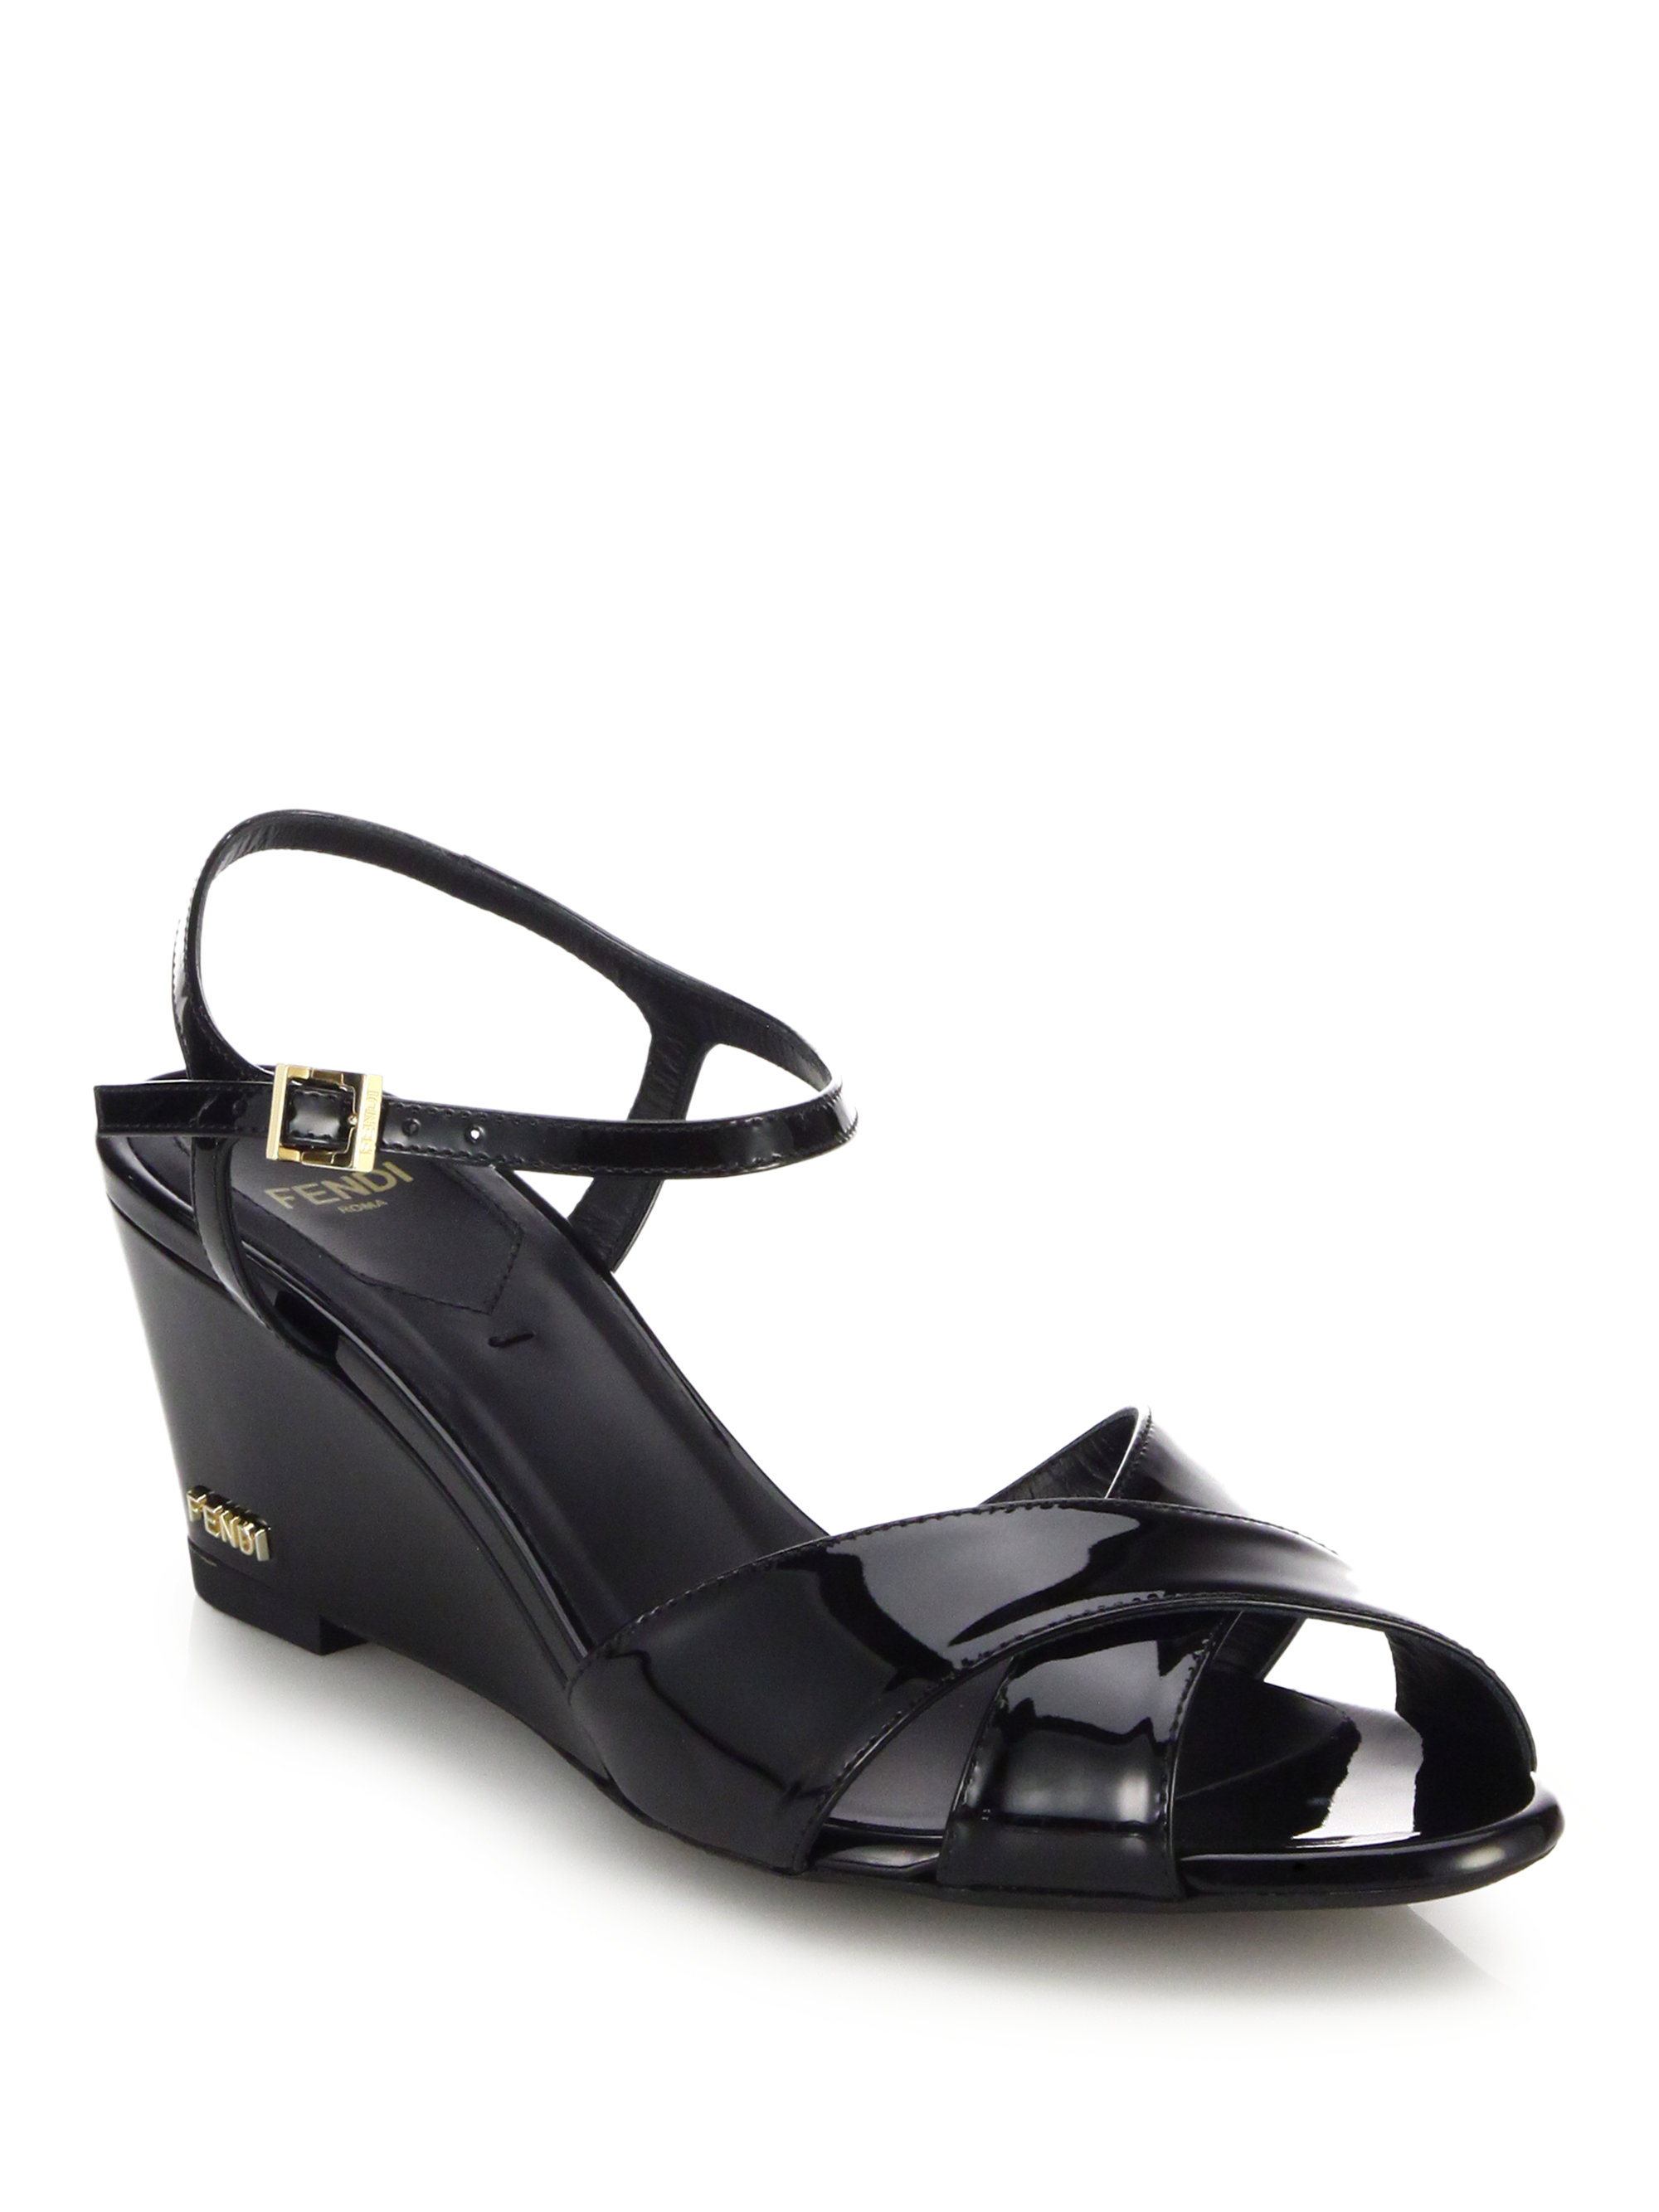 Lyst Fendi Patent Leather Wedge Sandals In Black